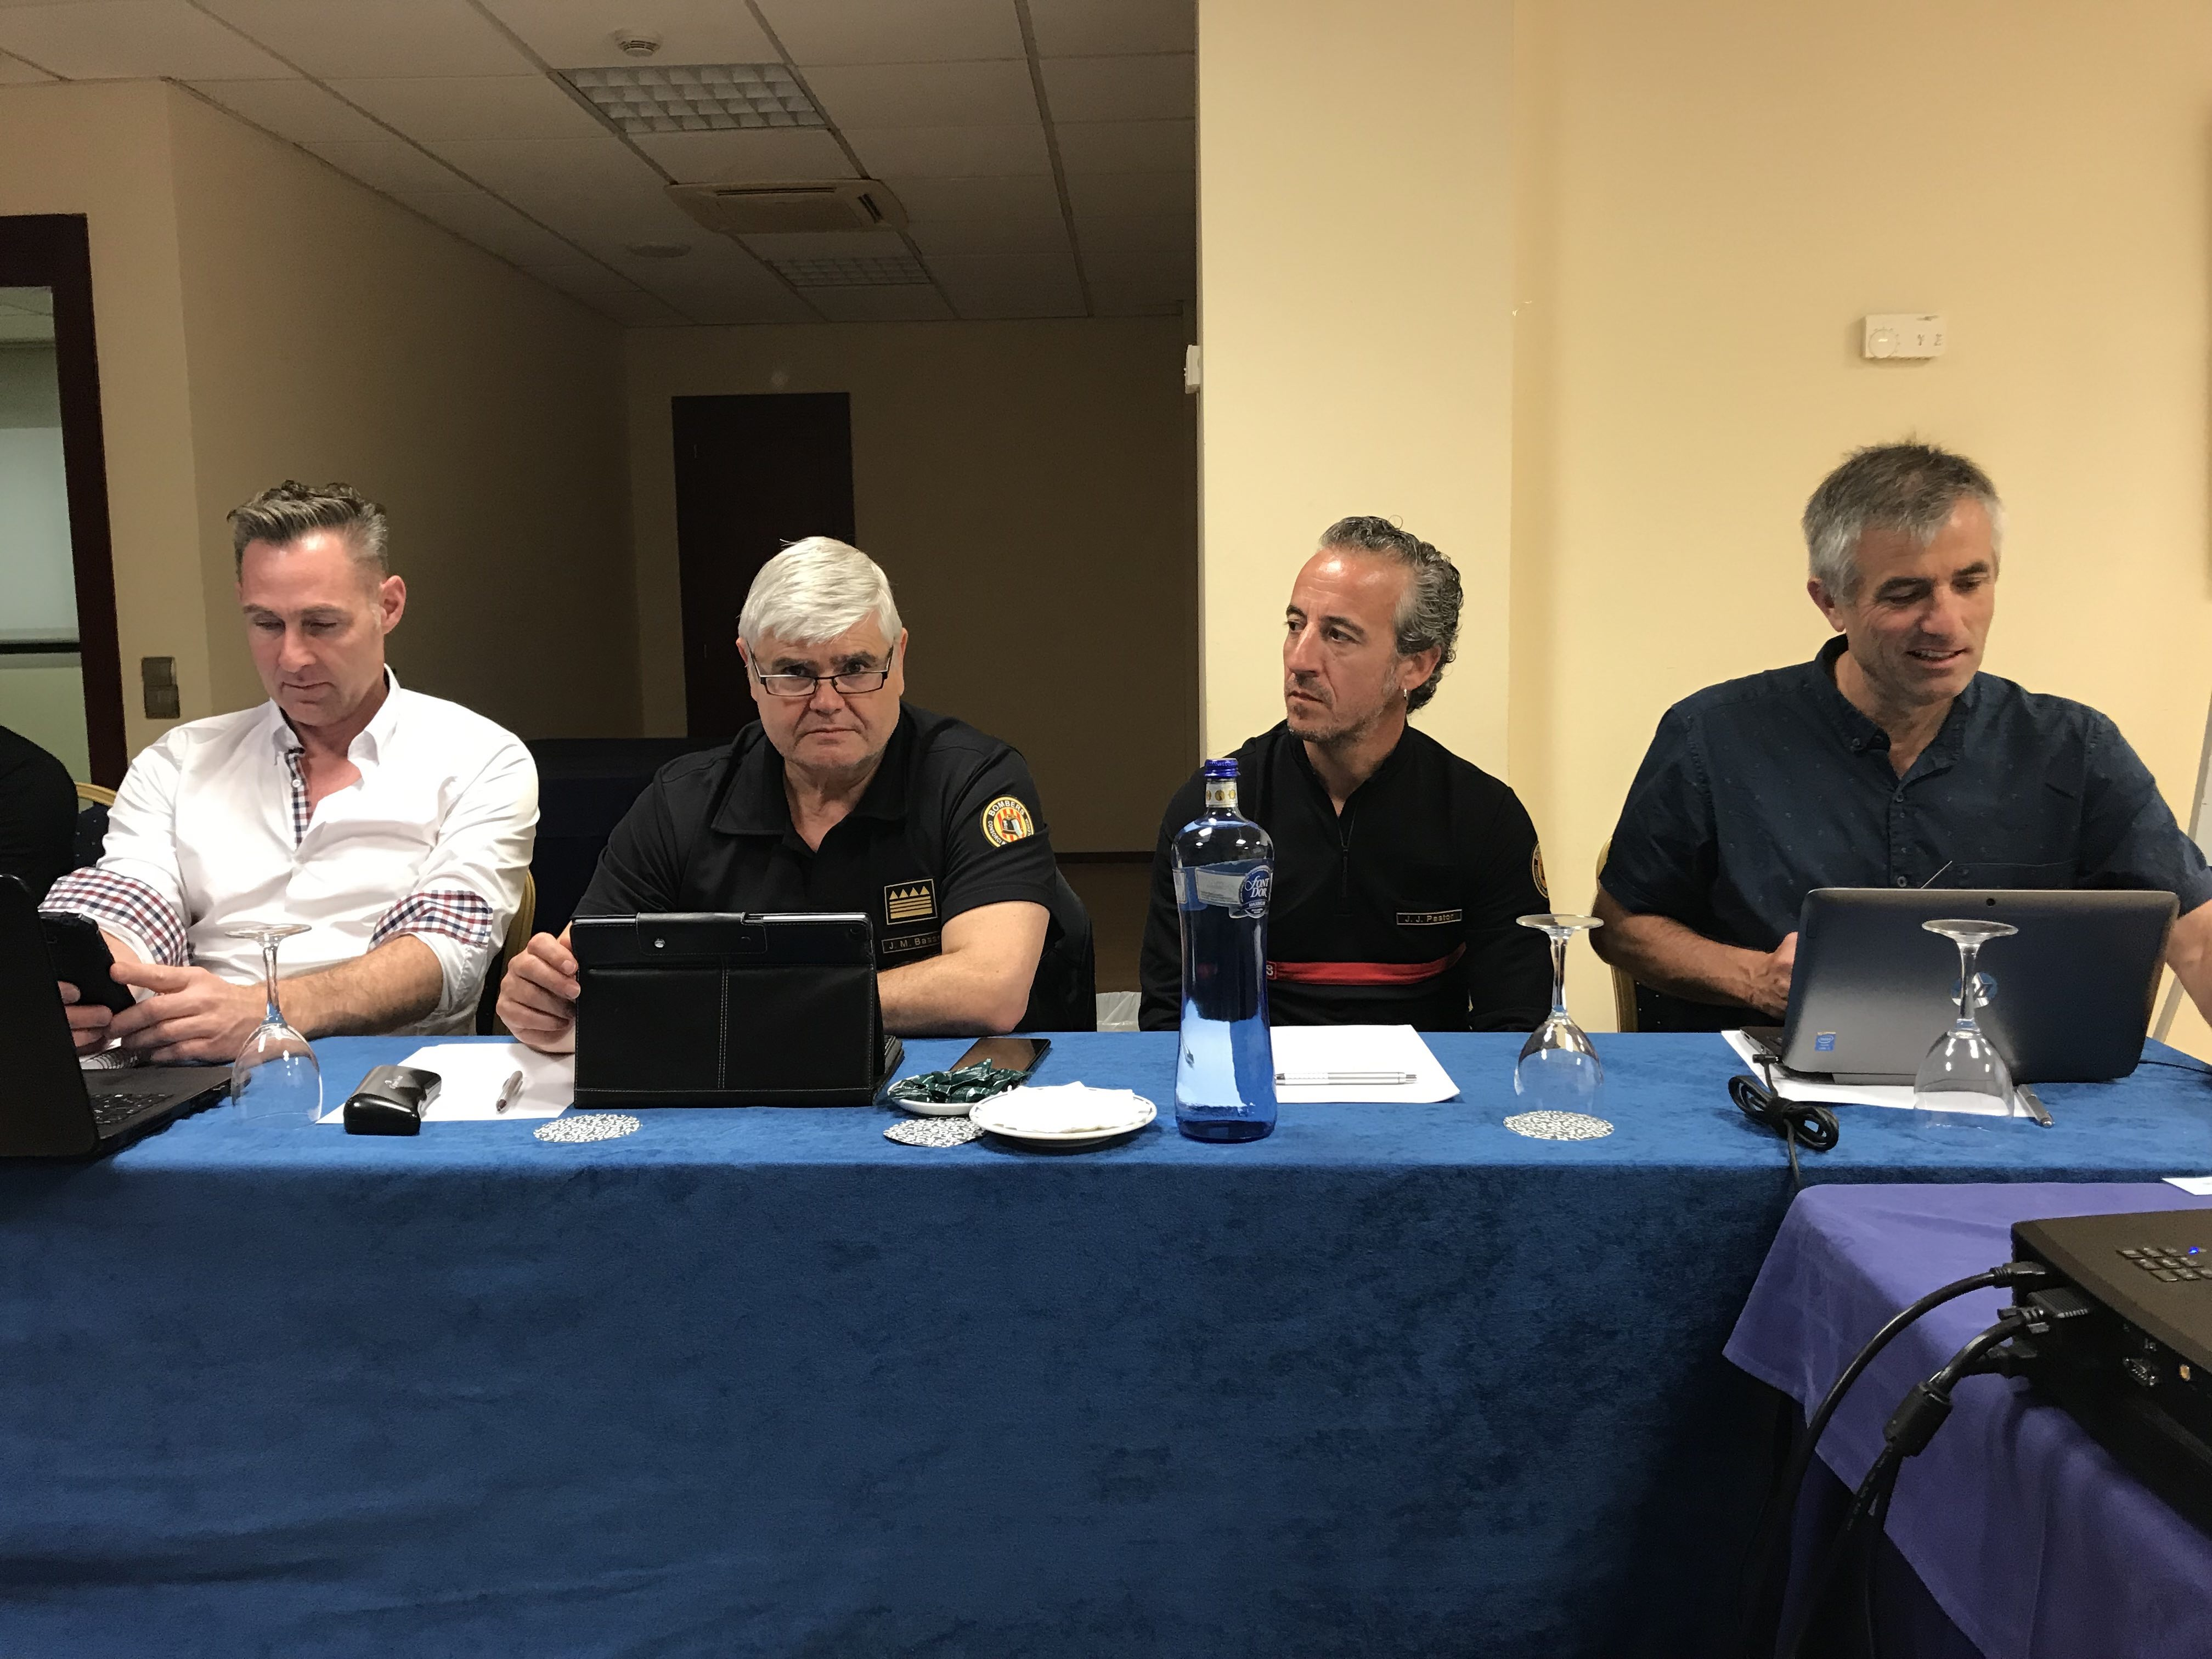 The Extrication & New Technology meeting was the first major function where Spain participated since the country came back to CTIF in 2018.